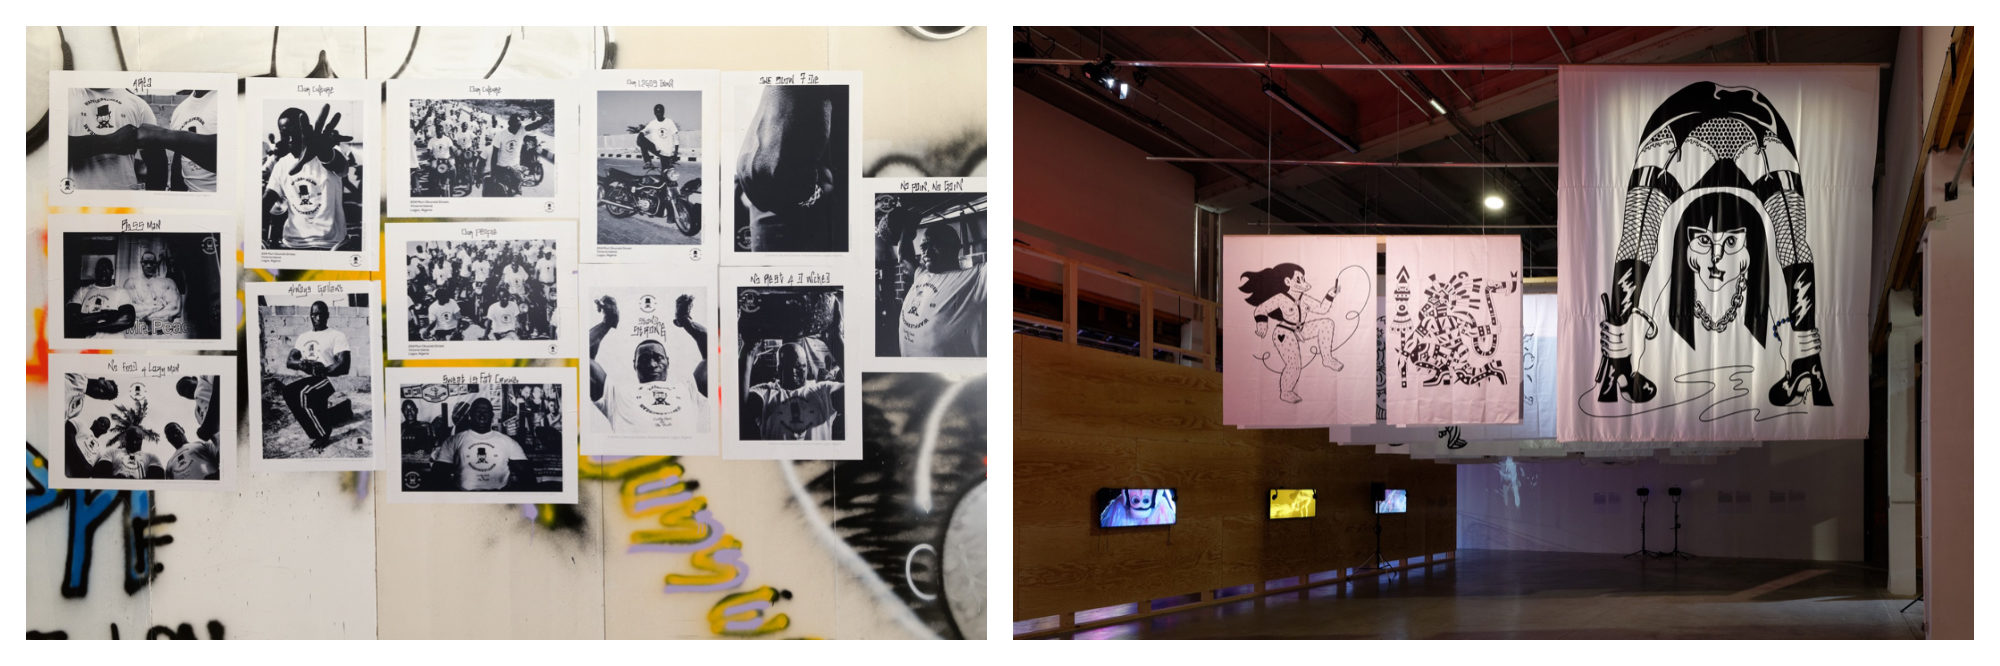 Black and white photos on a wall (left). Illustrations on large white sheets hanging at an exhibition space (right).